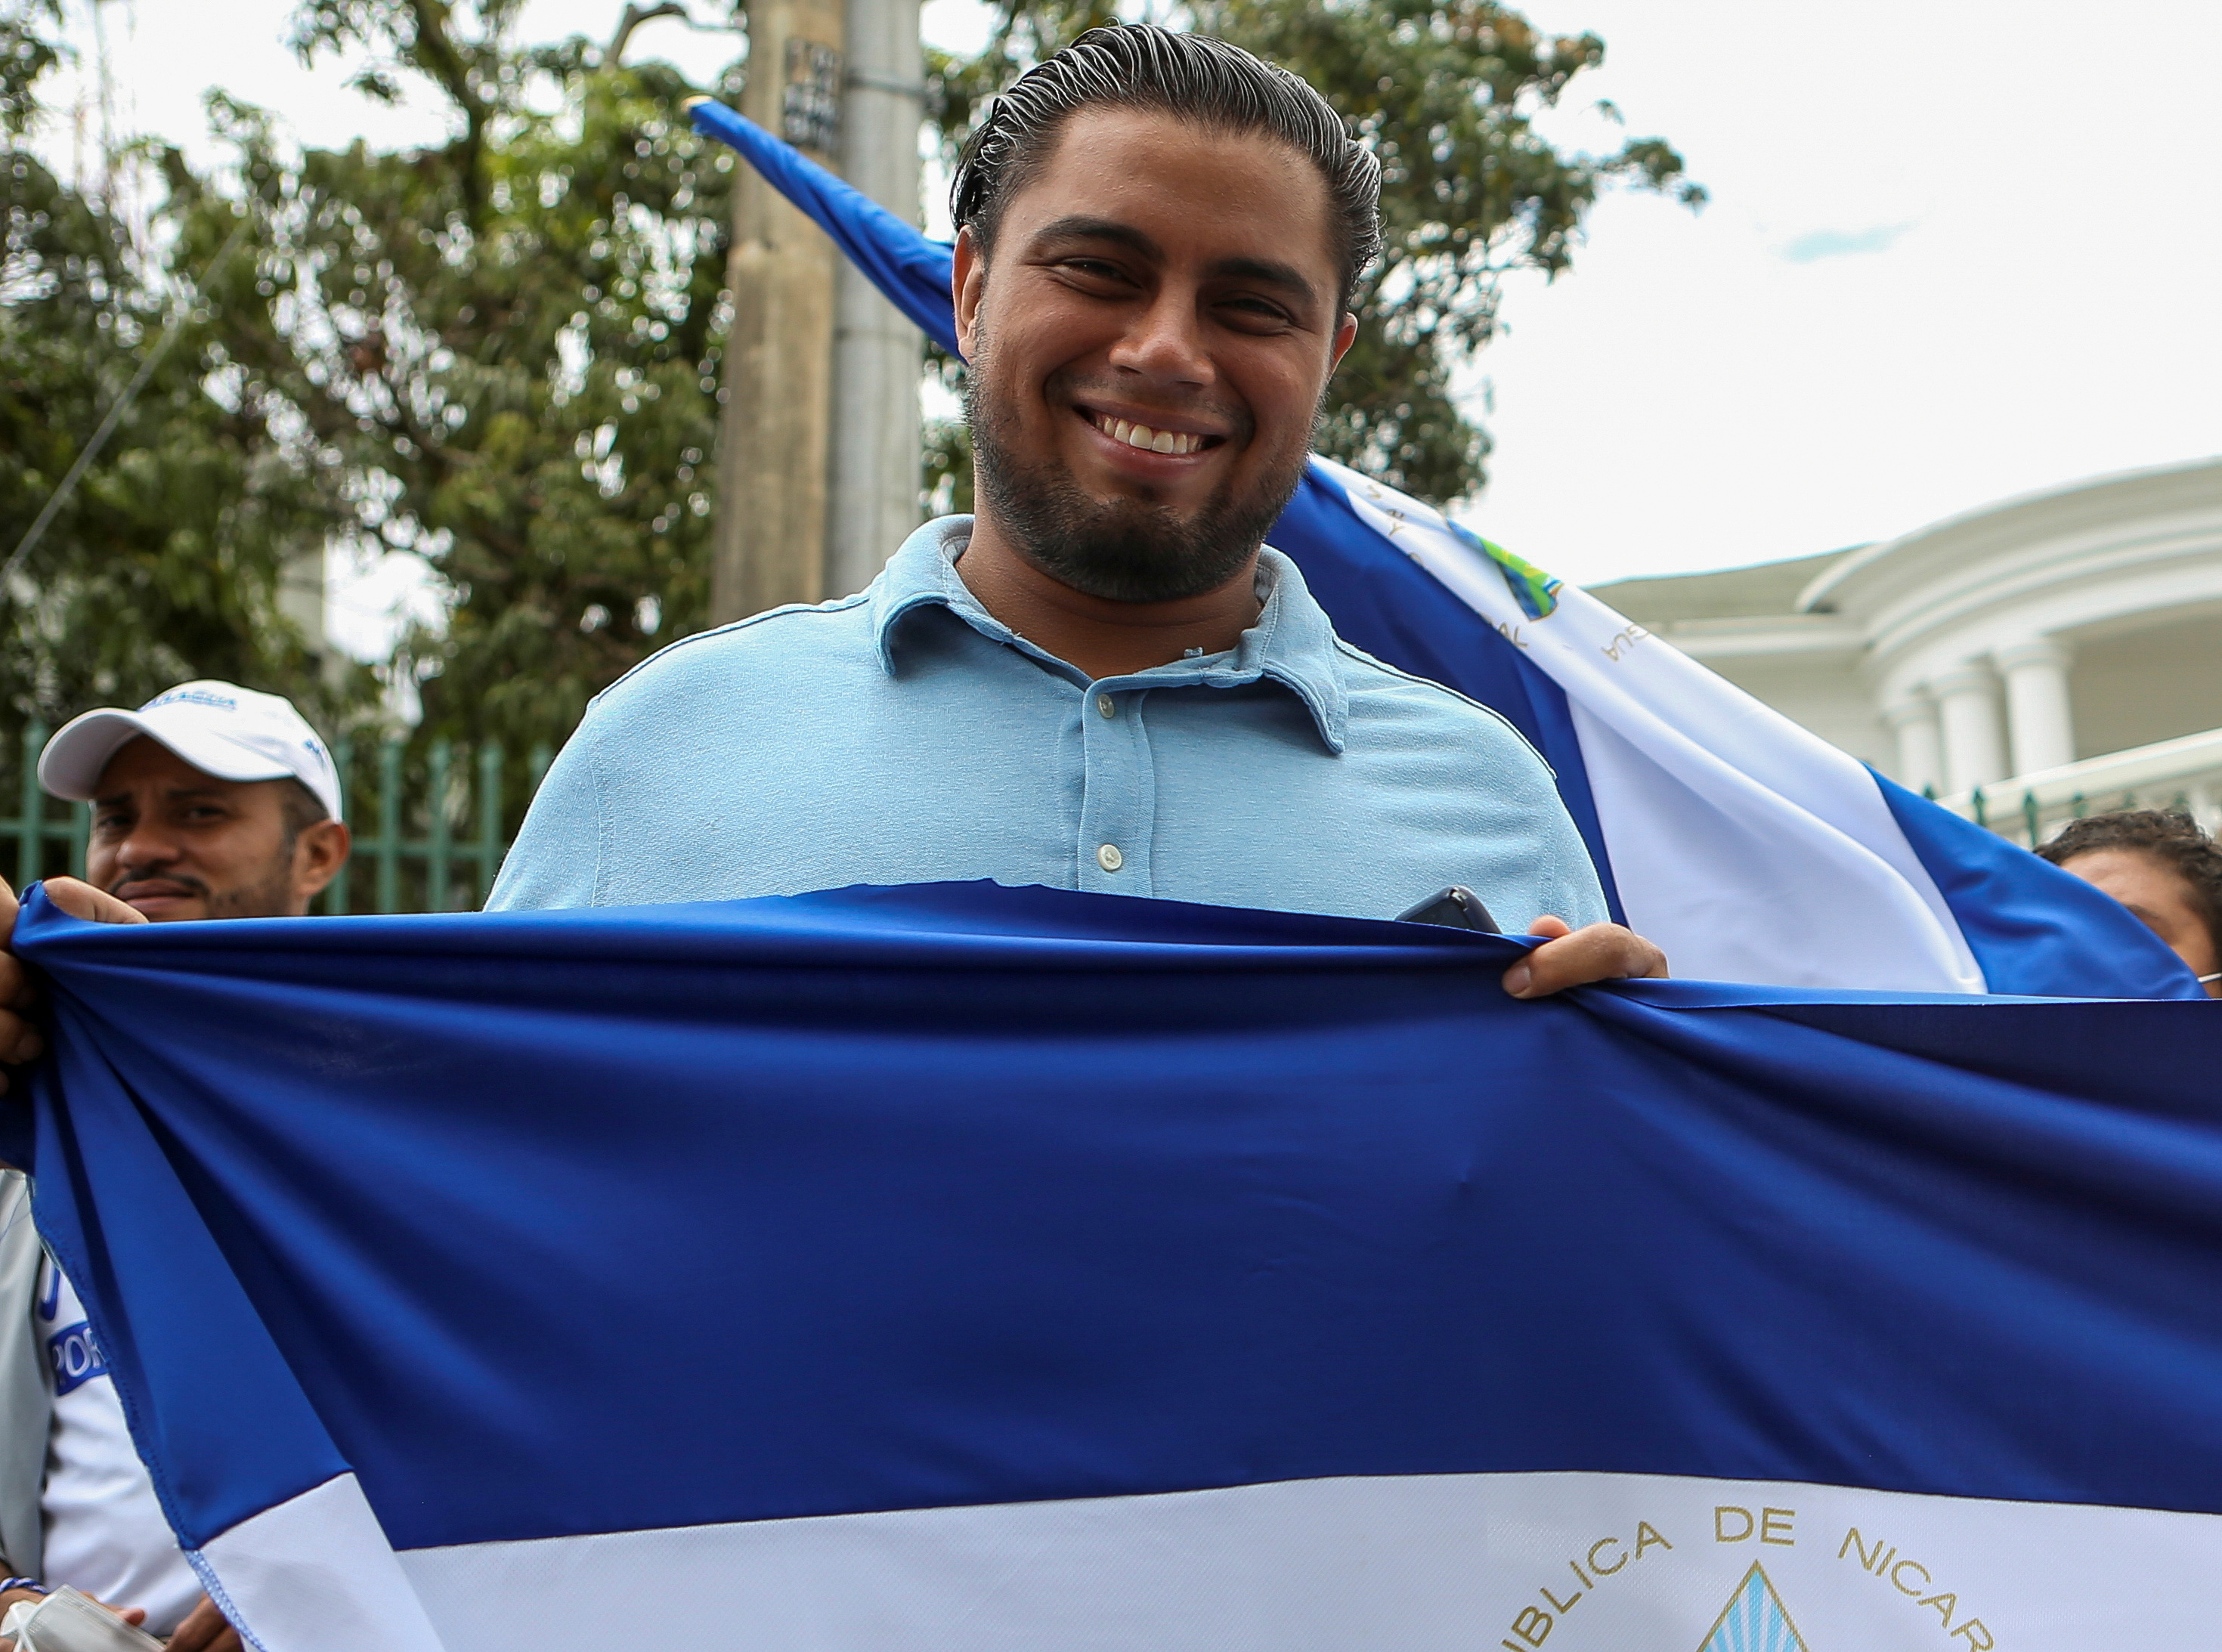 Nicaraguan political activist Joao Maldonado participates in a protest in front of the Inter-American Court of Human Rights (CIDH) in San Jose, Costa Rica August 27, 2021. REUTERS/Mayela Lopez